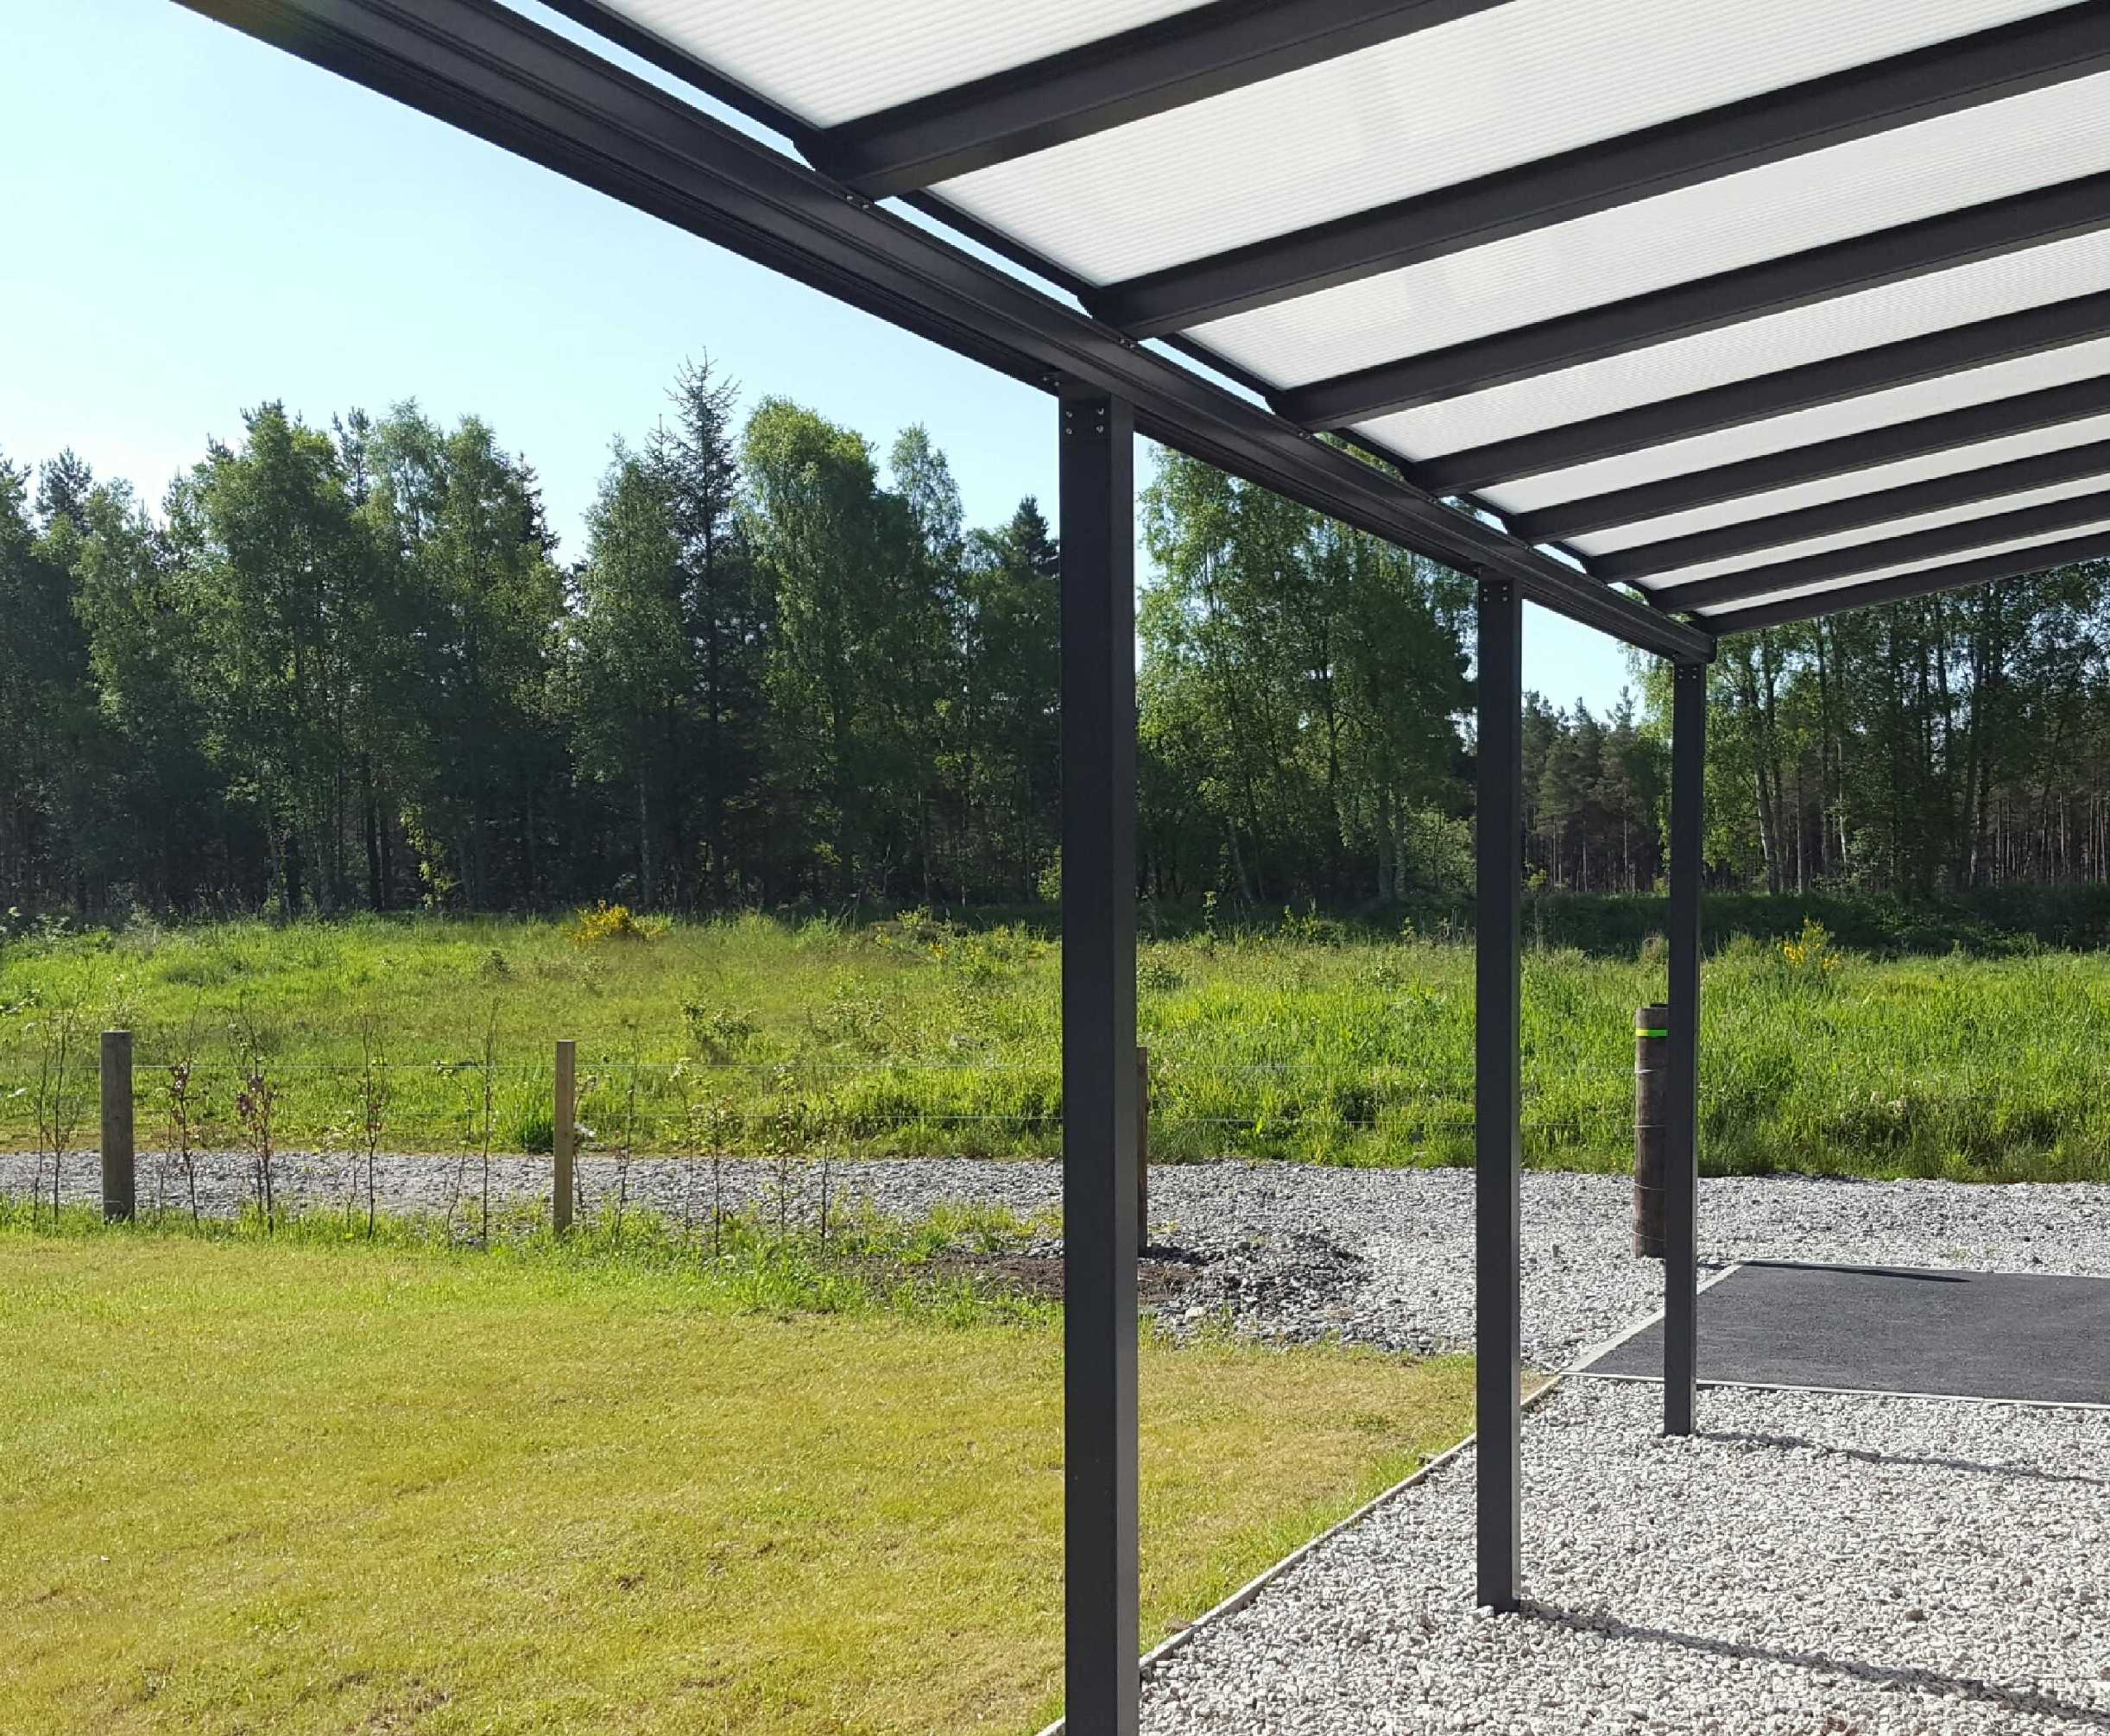 Omega Smart Lean-To Canopy, Anthracite Grey, 16mm Polycarbonate Glazing - 2.8m (W) x 4.0m(P), (2) Supporting Posts